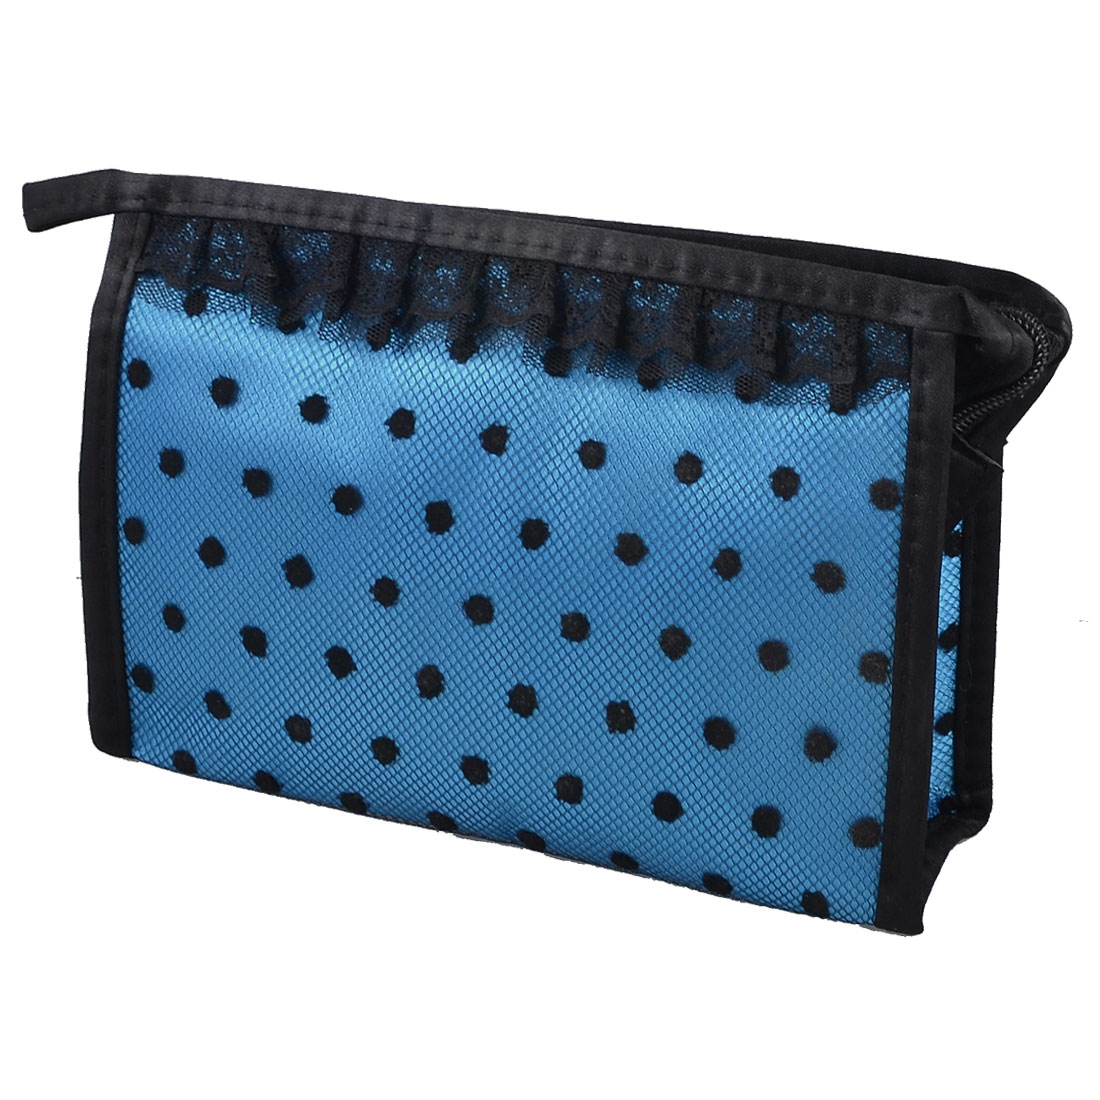 Rectangle Dots Mesh Lace Makeup Cosmetic Bag Organizer Mascara Blusher Holder Blue Black